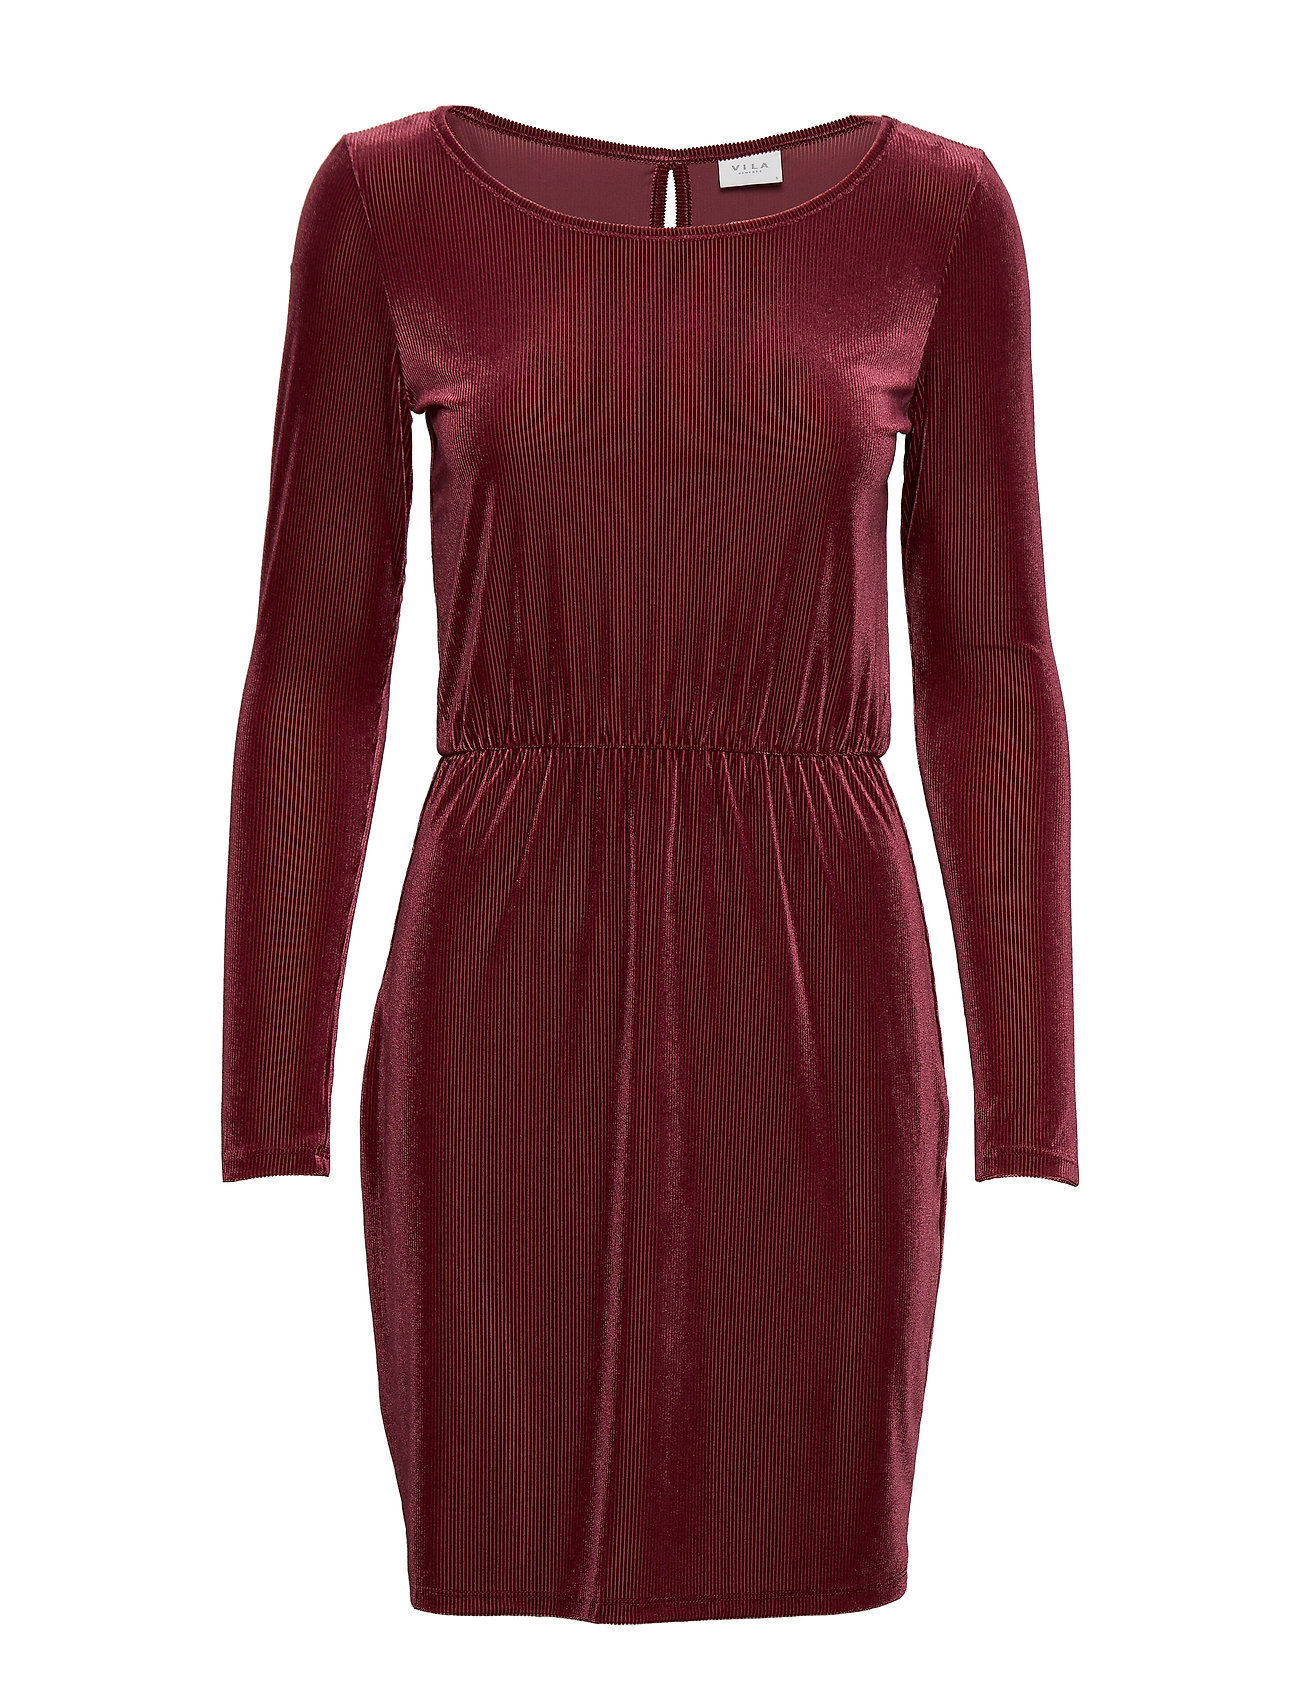 Vila VIBIANA L/S DRESS/KI - TAWNY PORT